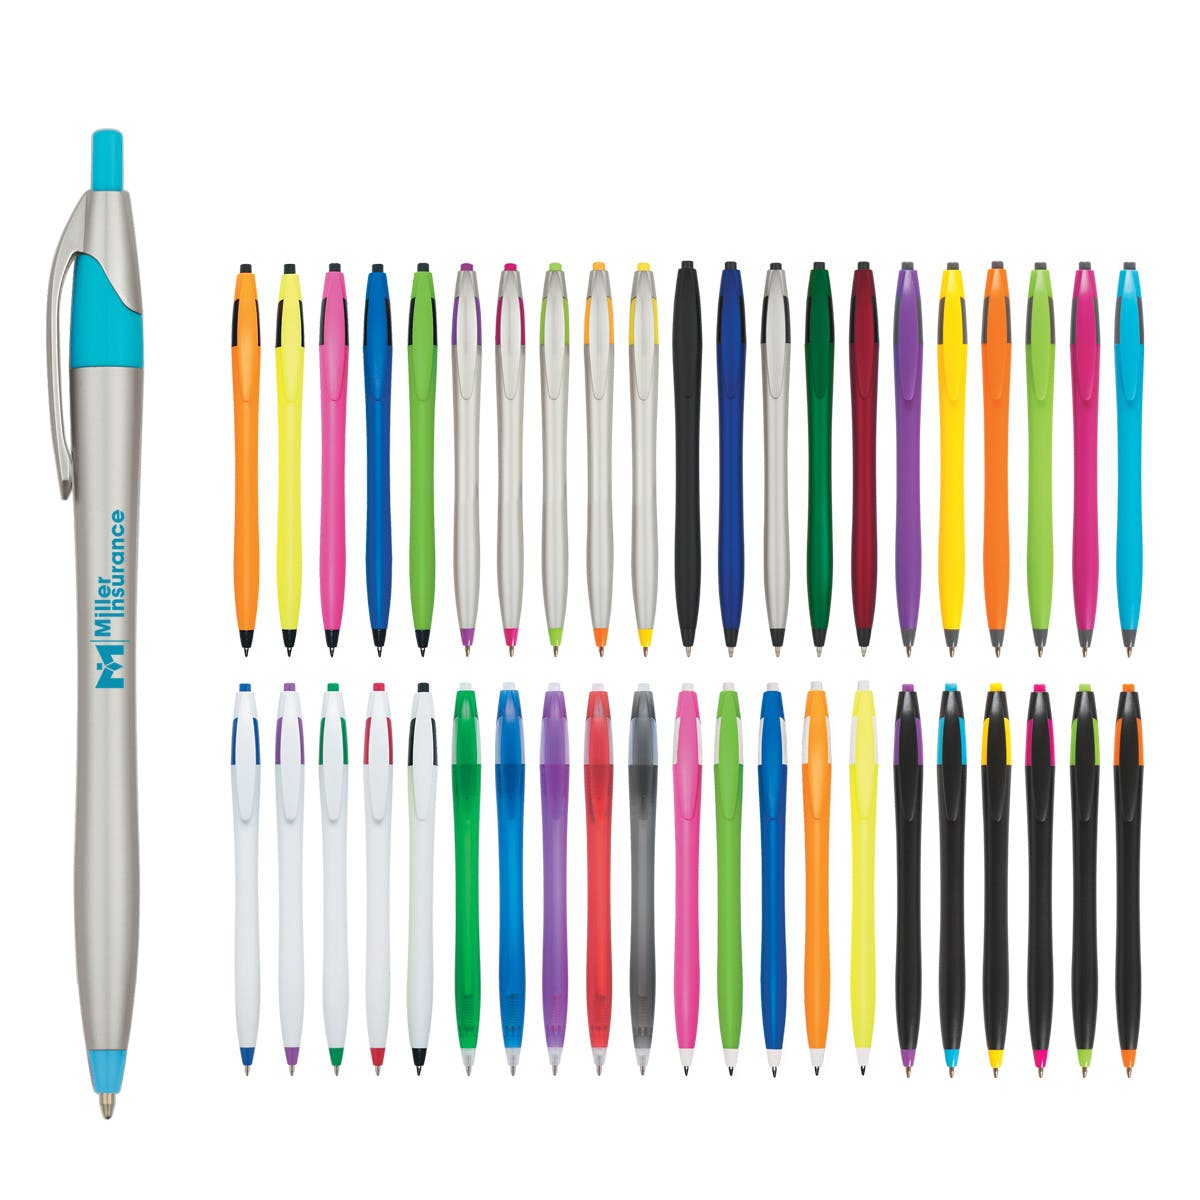 Dart Pen (Item # CDGPS-EJOZP) Pen sold by InkEasy